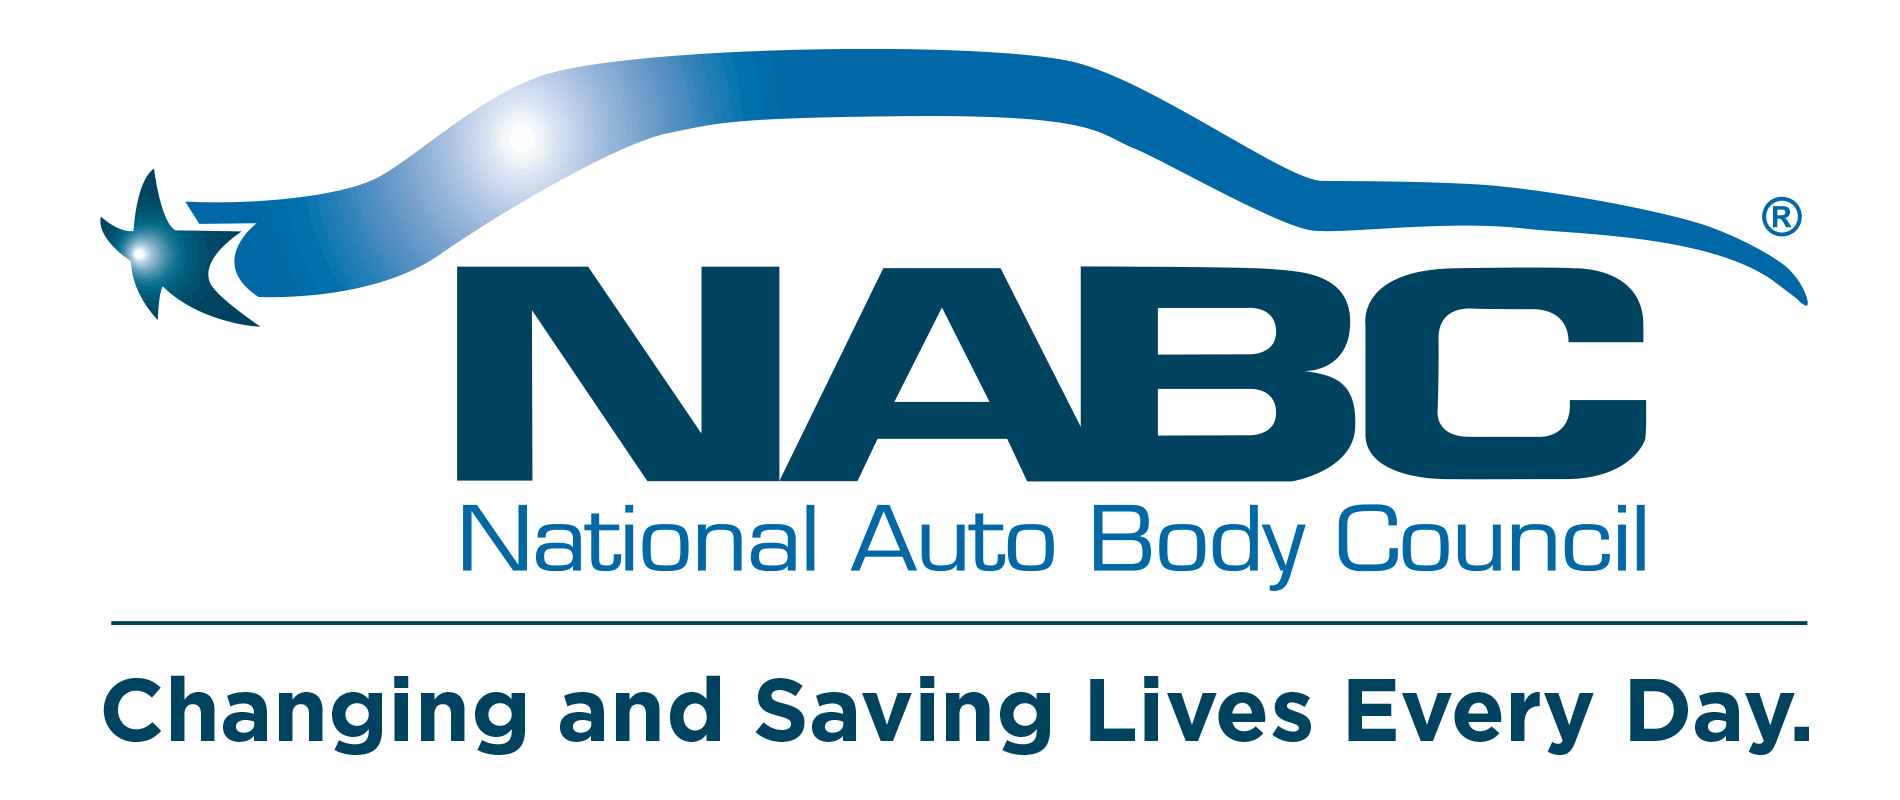 NABC Logo with Tagline